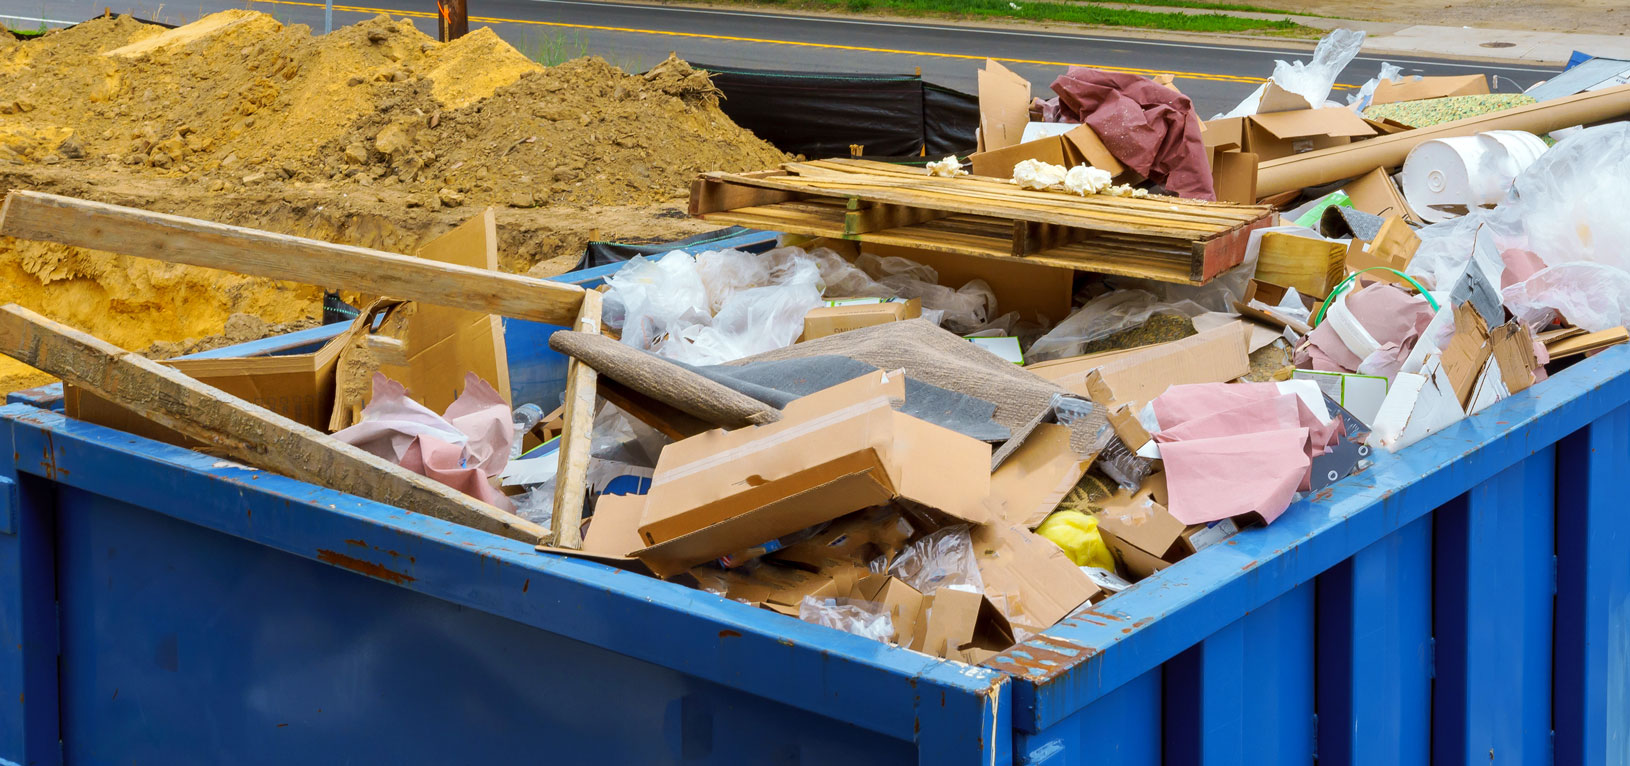 Orange County Junk Removal, Junk Removal Services and Junk Removal Company